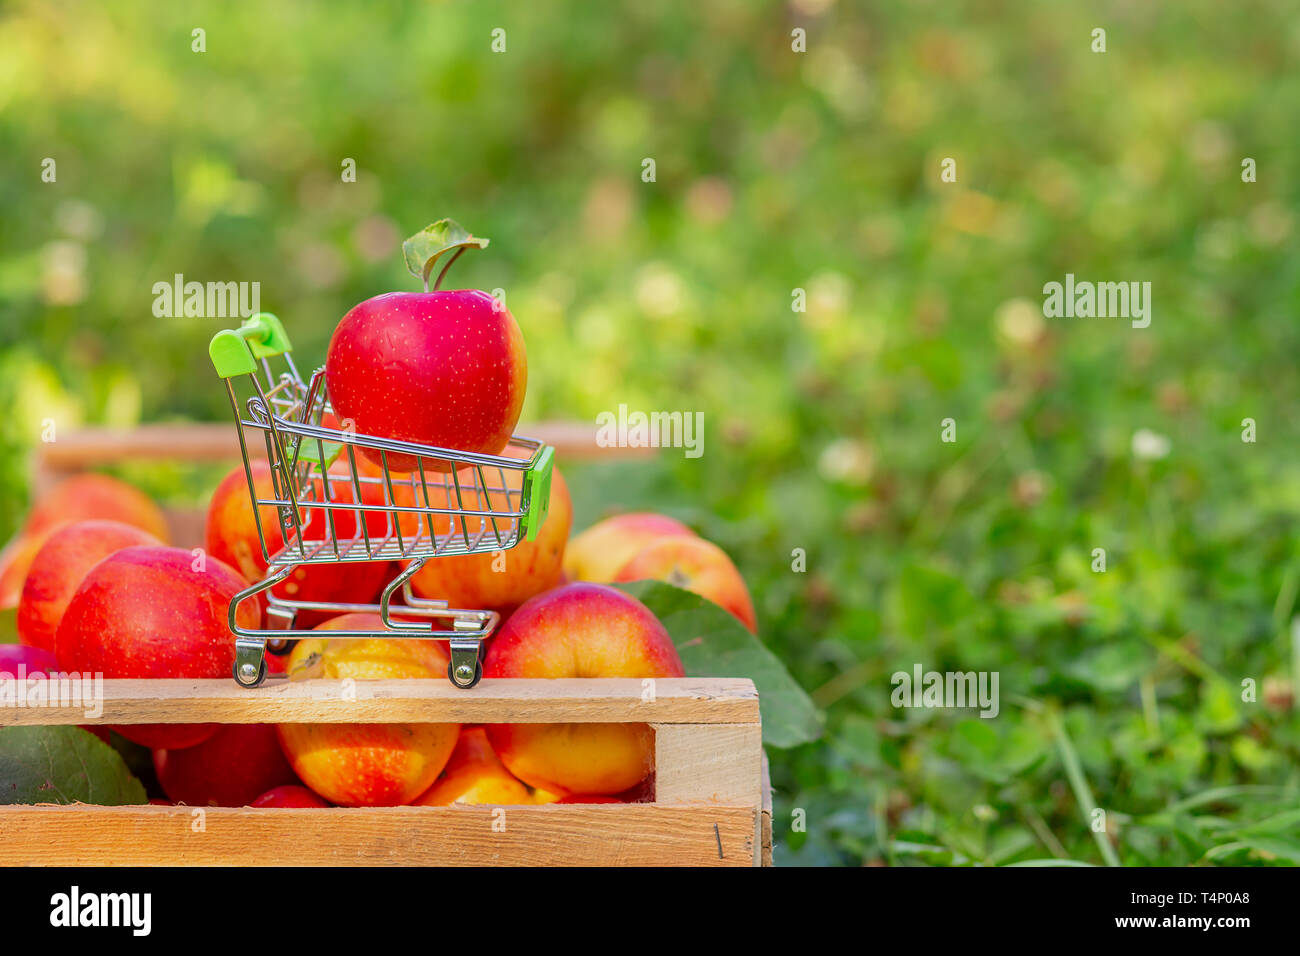 A small trolley for goods with a ripe red apple on the background of a box of apples in the garden. Close-up, space for text. - Stock Image